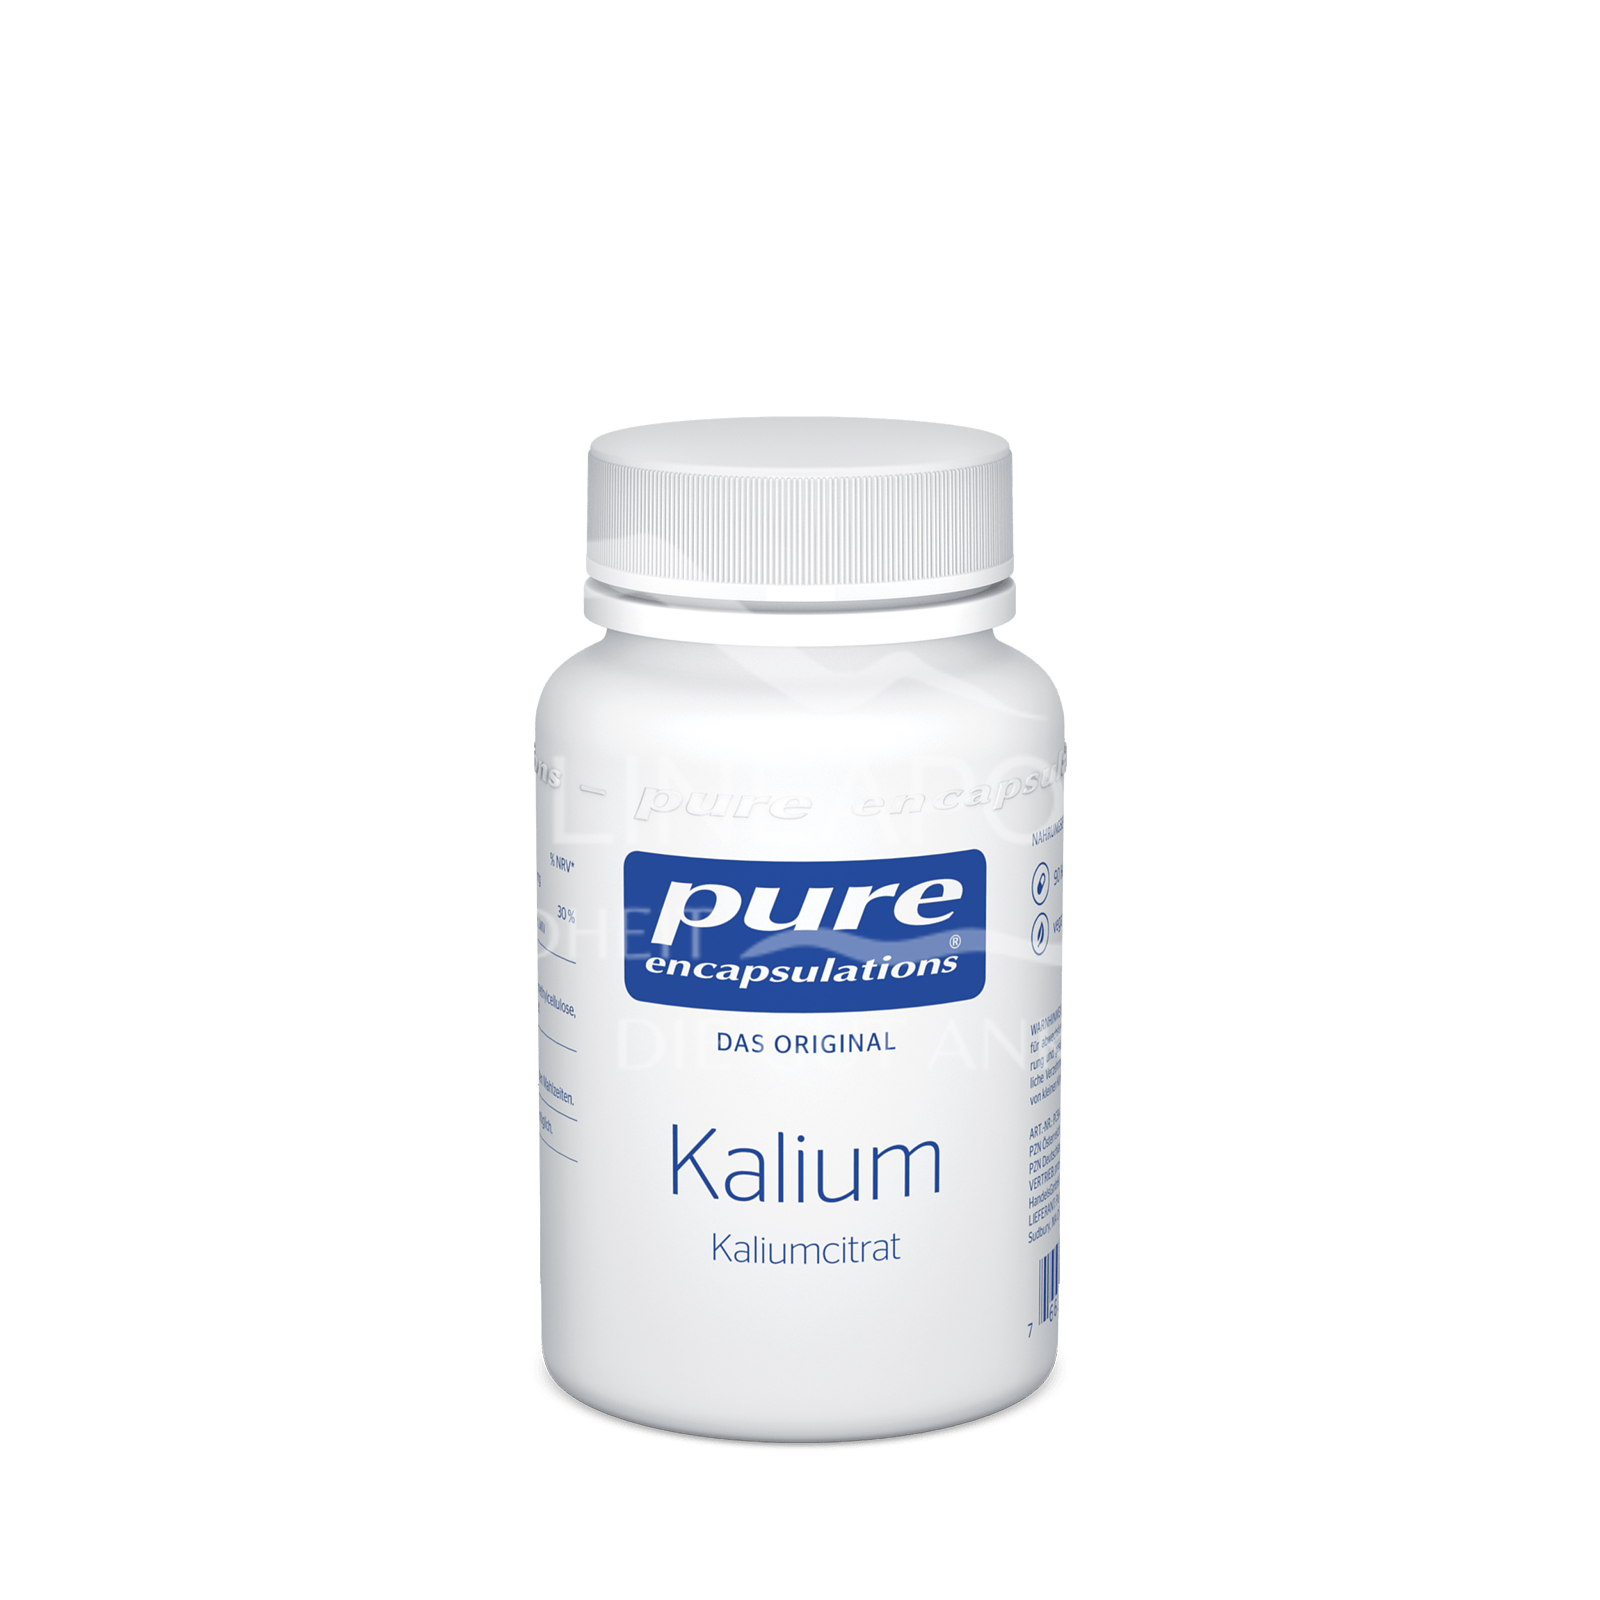 pure encapsulations® Kalium